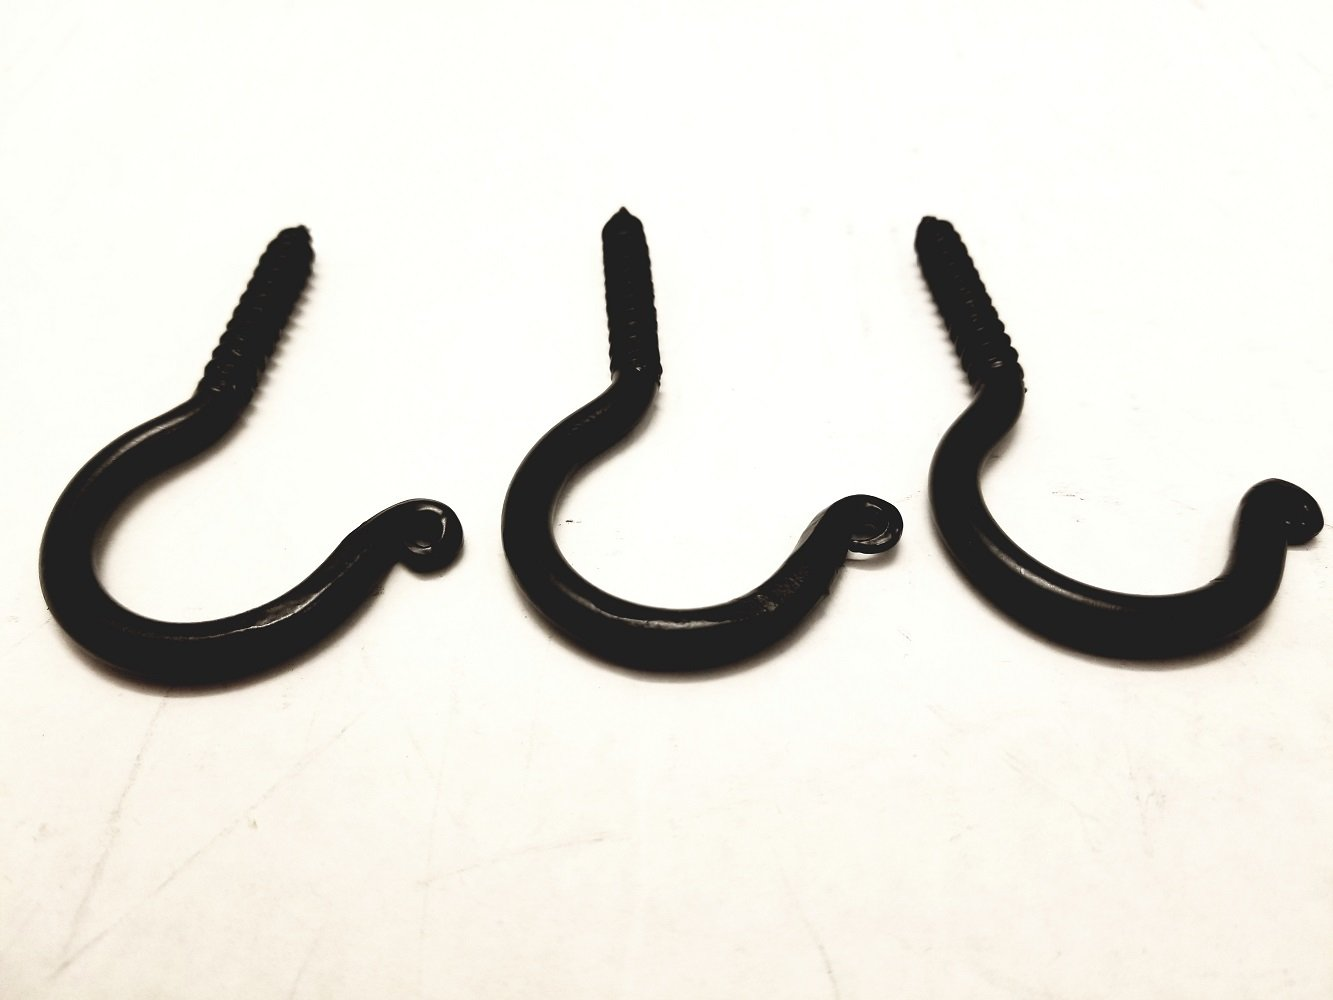 Each Hook is 3 Long 3 Pack Wrought Iron Ceiling Hook Screw Country Primitive D/écor